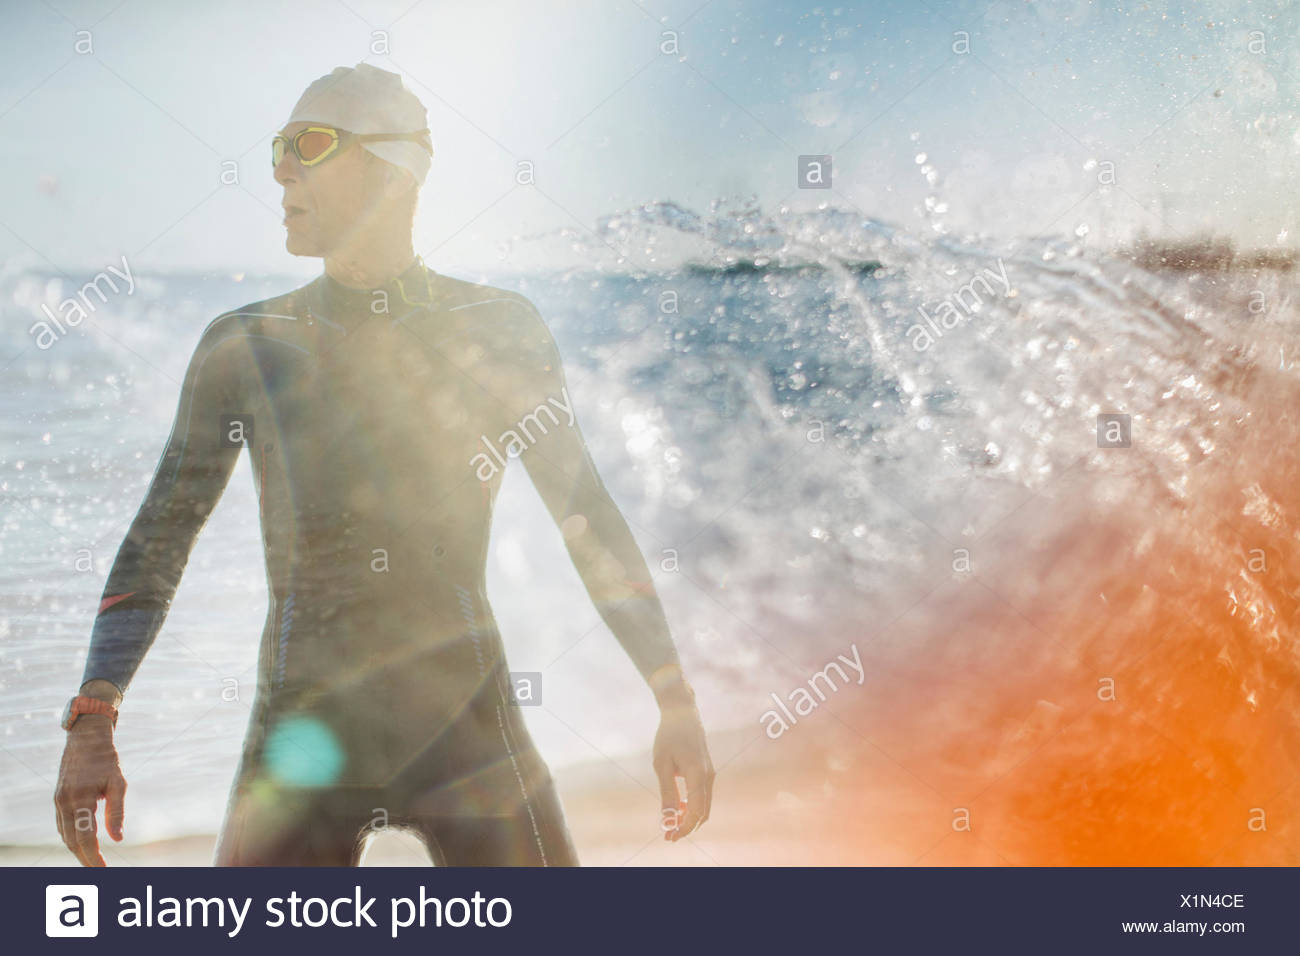 A swimmer in a wet suit standing by the water's edge. - Stock Image